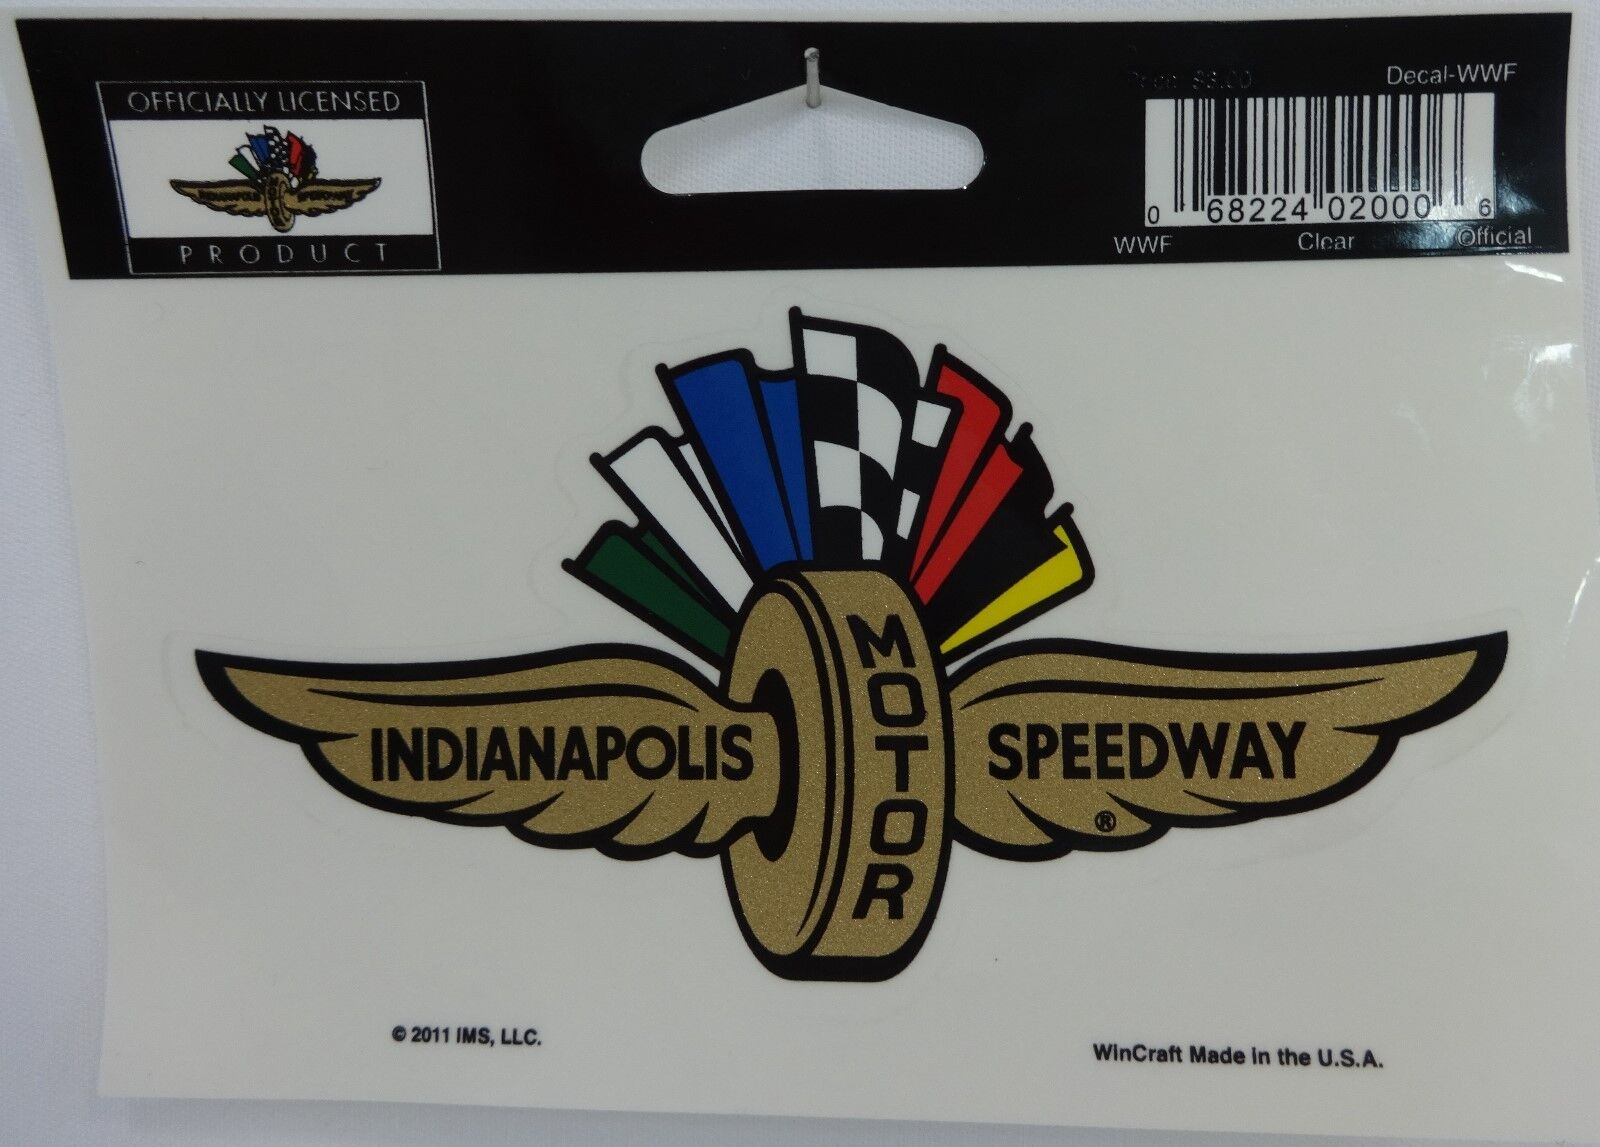 Indianapolis motor speedway gold wings wheel flag decal for Indianapolis motor speedway clothing